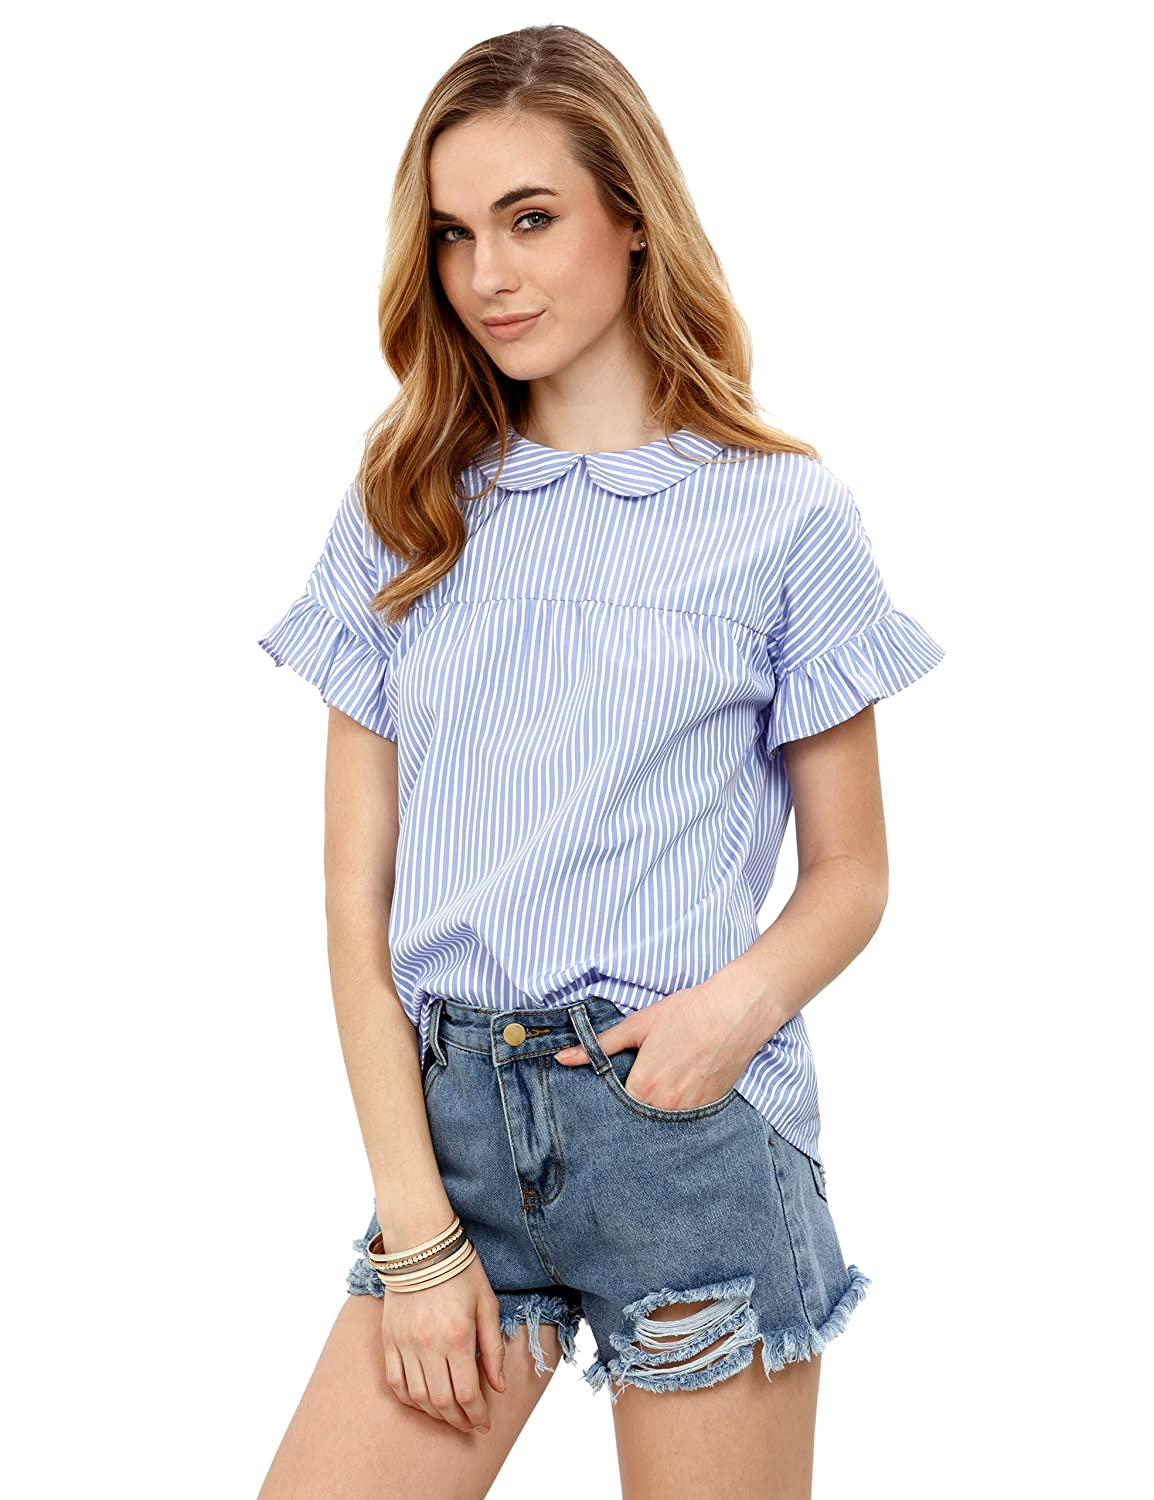 a1ec50cab4fe SheIn Women's Cute Striped Peter Pan Collar Short Sleeve Babydoll Blouse Top  at Amazon Women's Clothing store: